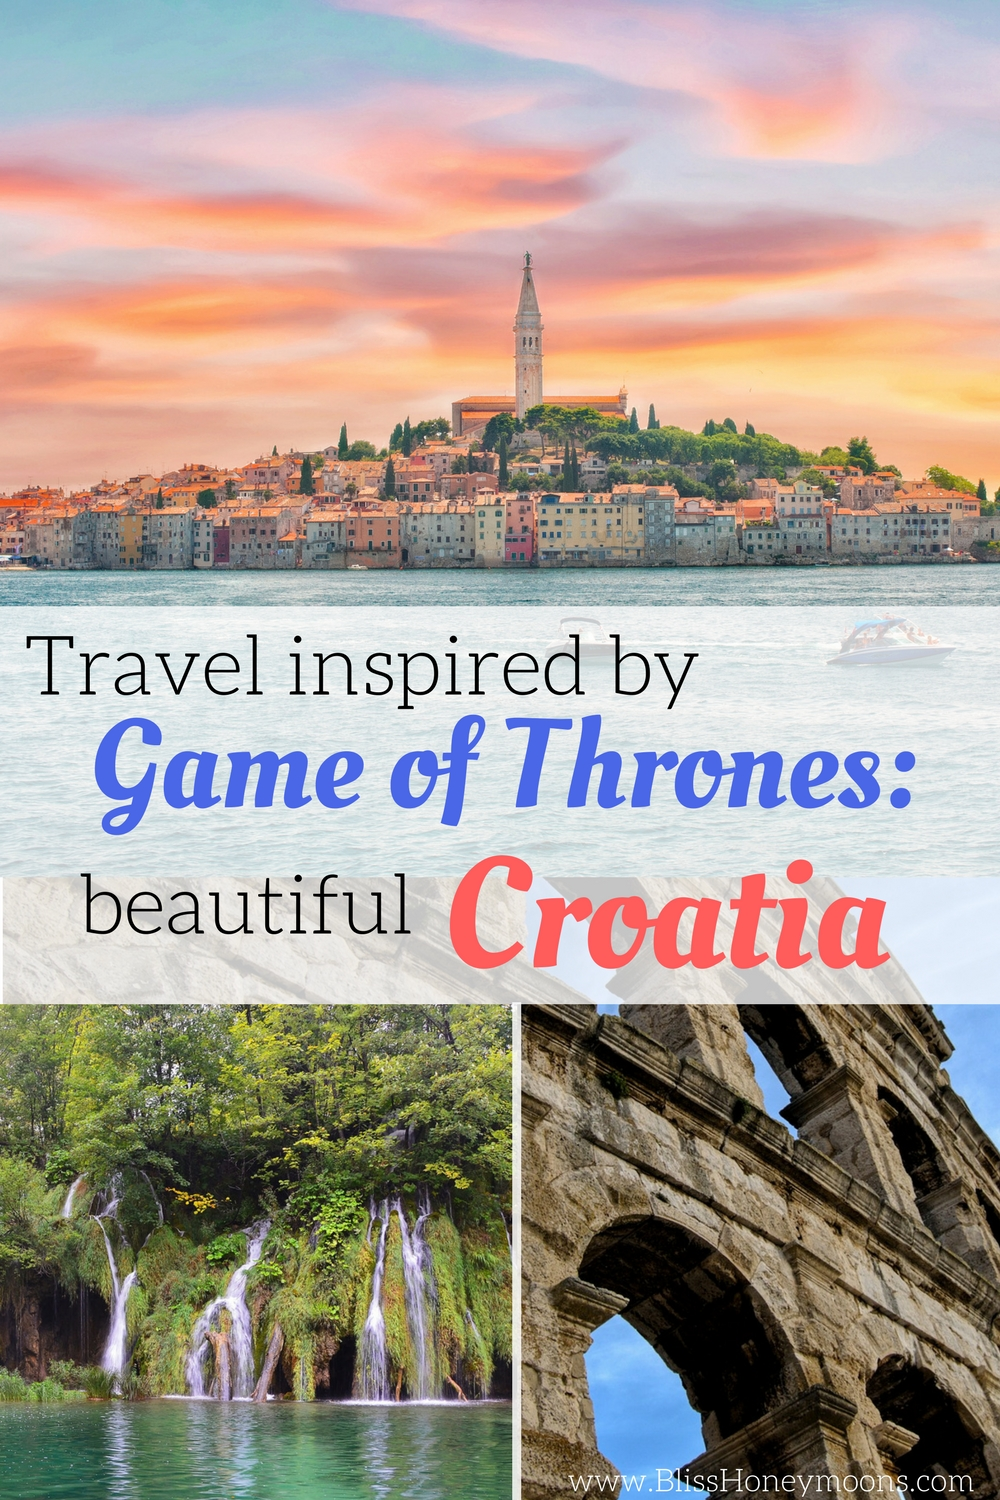 romantic travel Croatia, Game of Thrones Croatia, romantic travel review Croatia, best romantic travel destinations, Game of Thrones travel, unique travel ideas, romantic travel ideas, Bliss Honeymoons review, best romantic travel agent, best destination wedding travel agent, best honeymoon travel agent